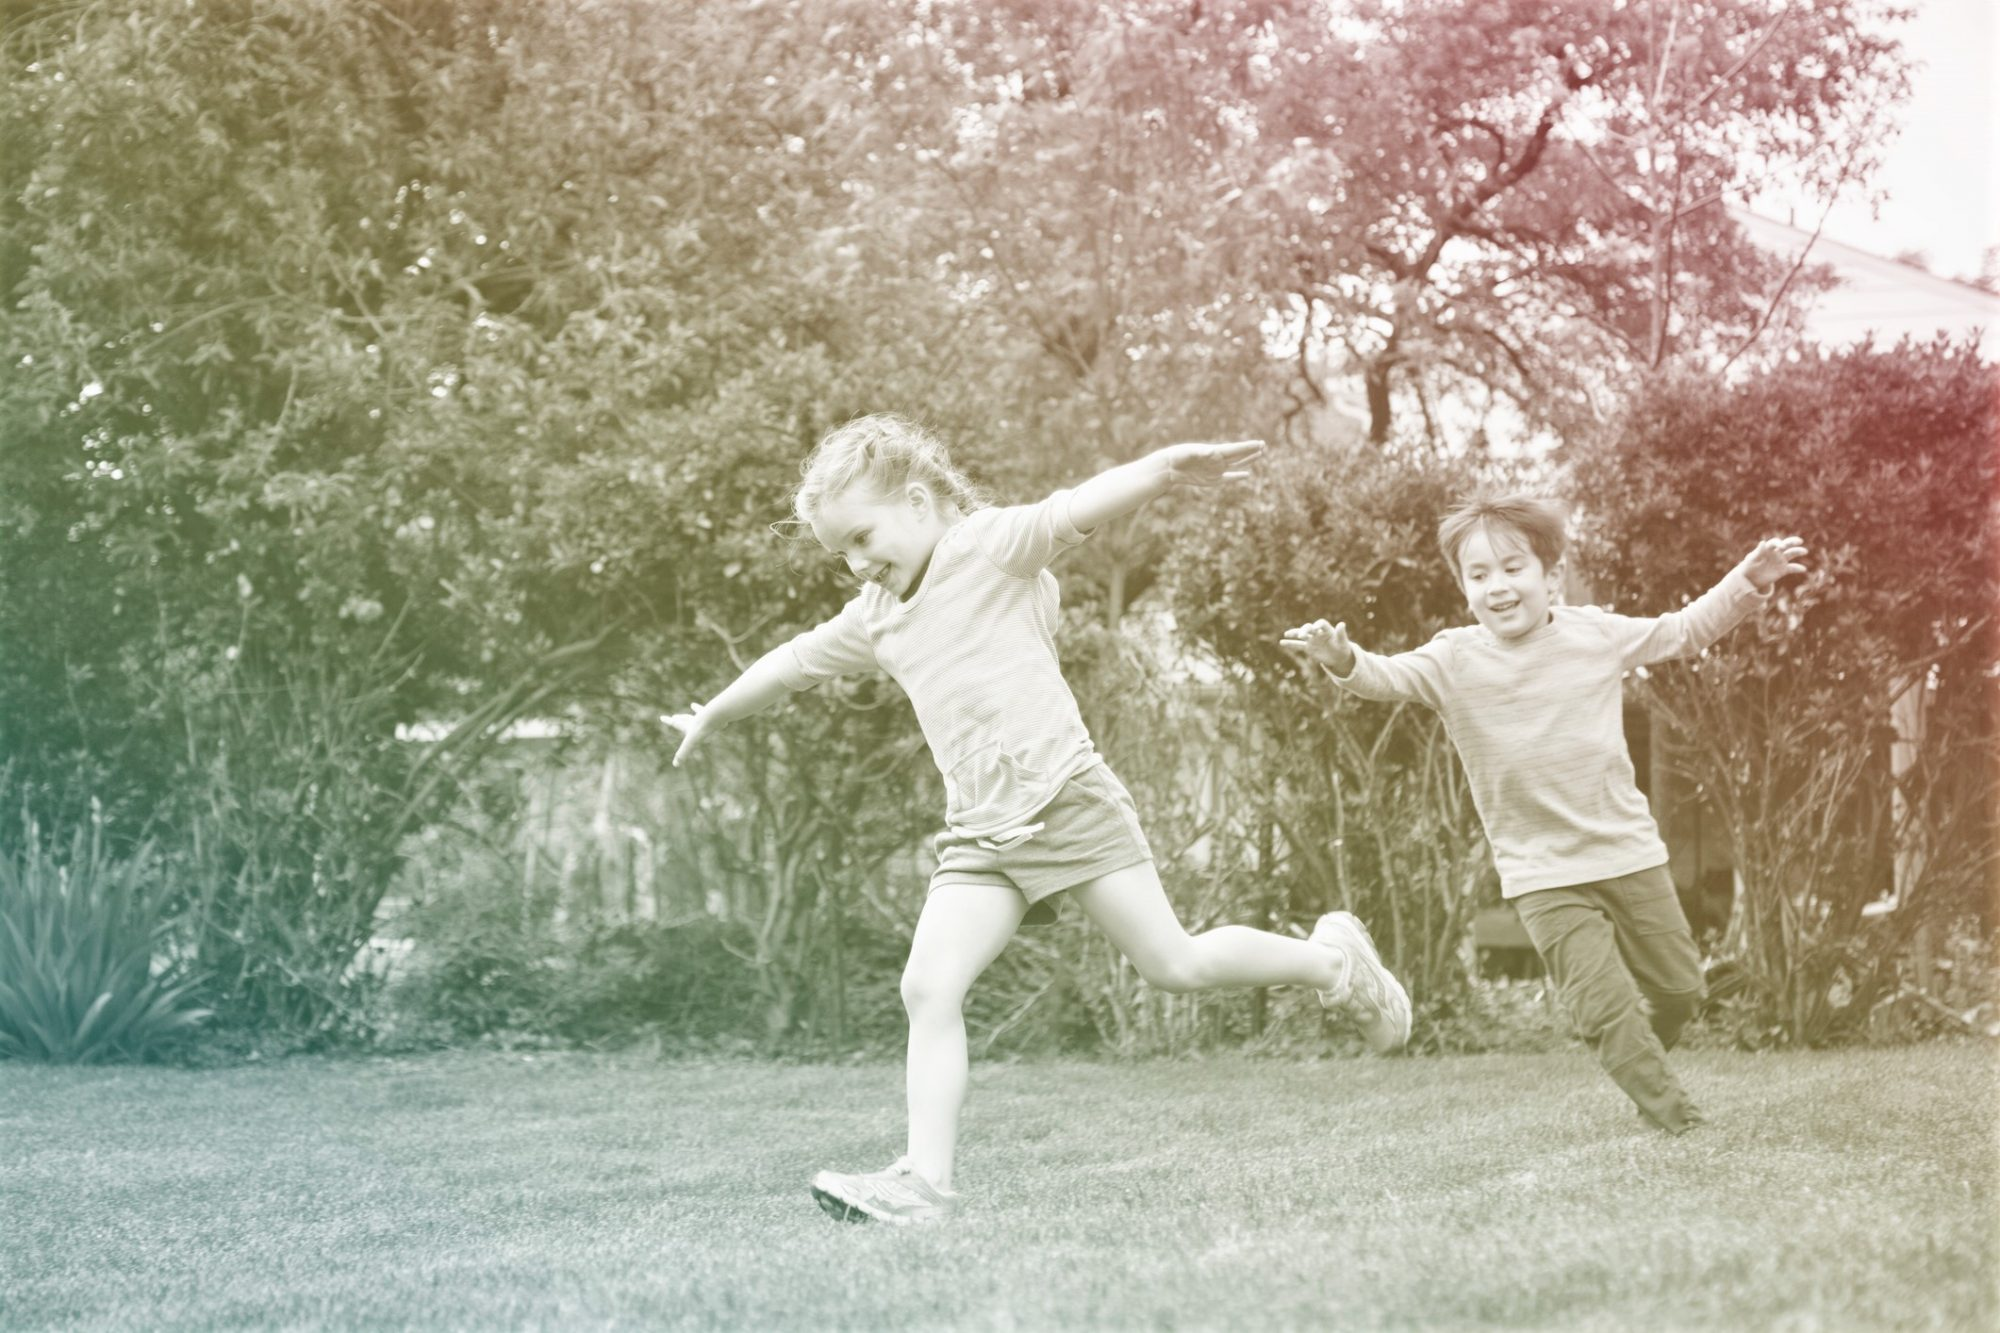 two children running around outside on grass outside with arms spread open